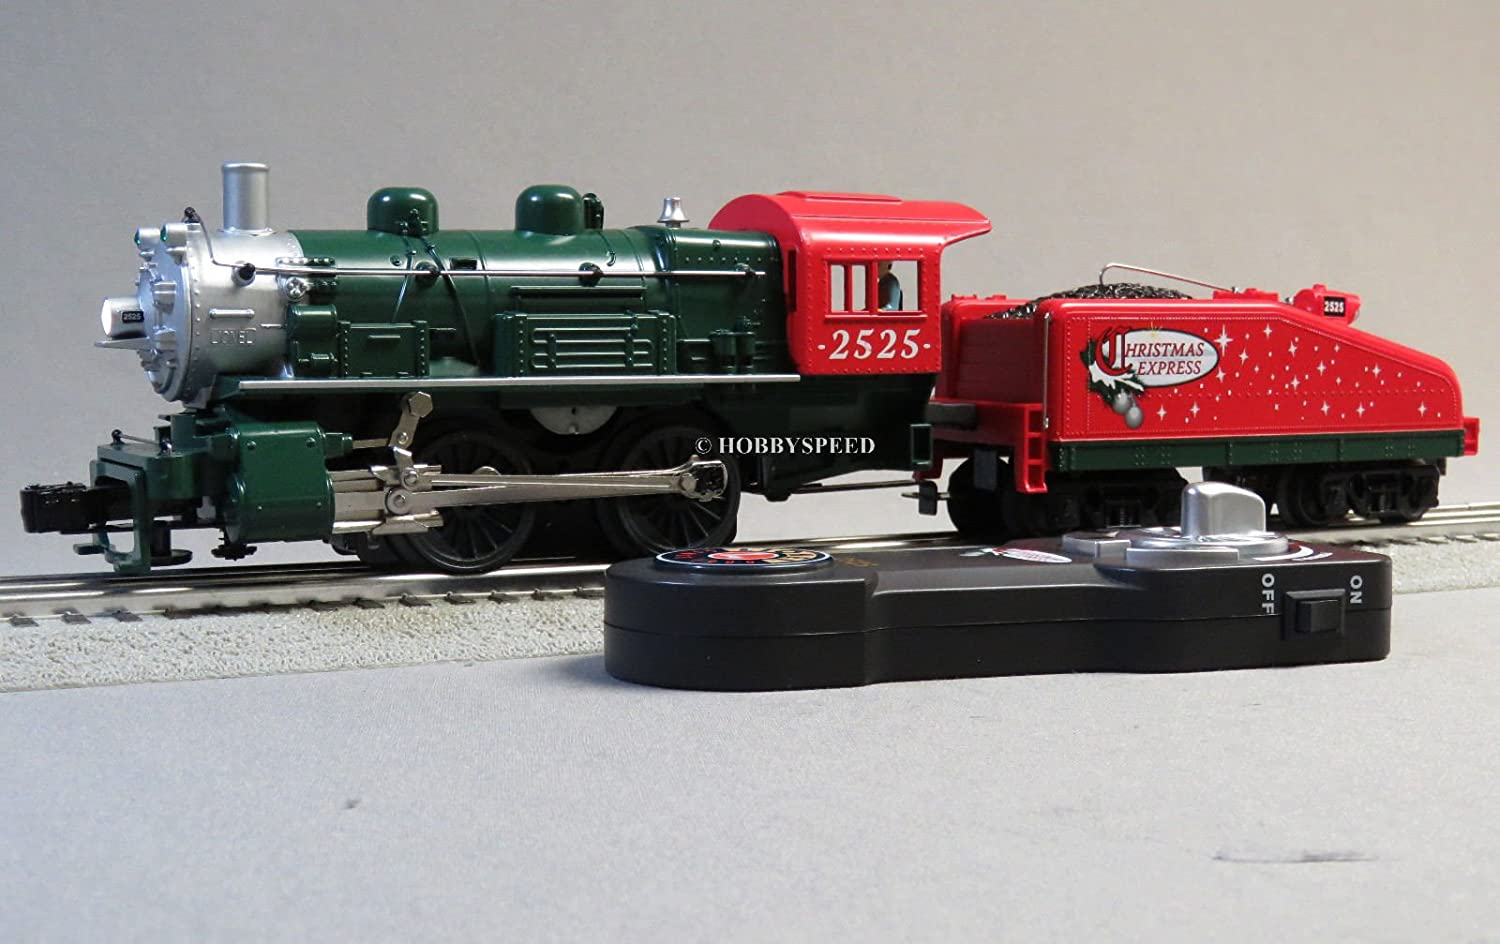 Amazon.com: LIONEL CHRISTMAS EXPRESS LIONCHIEF BLUETOOTH ENGINE ...